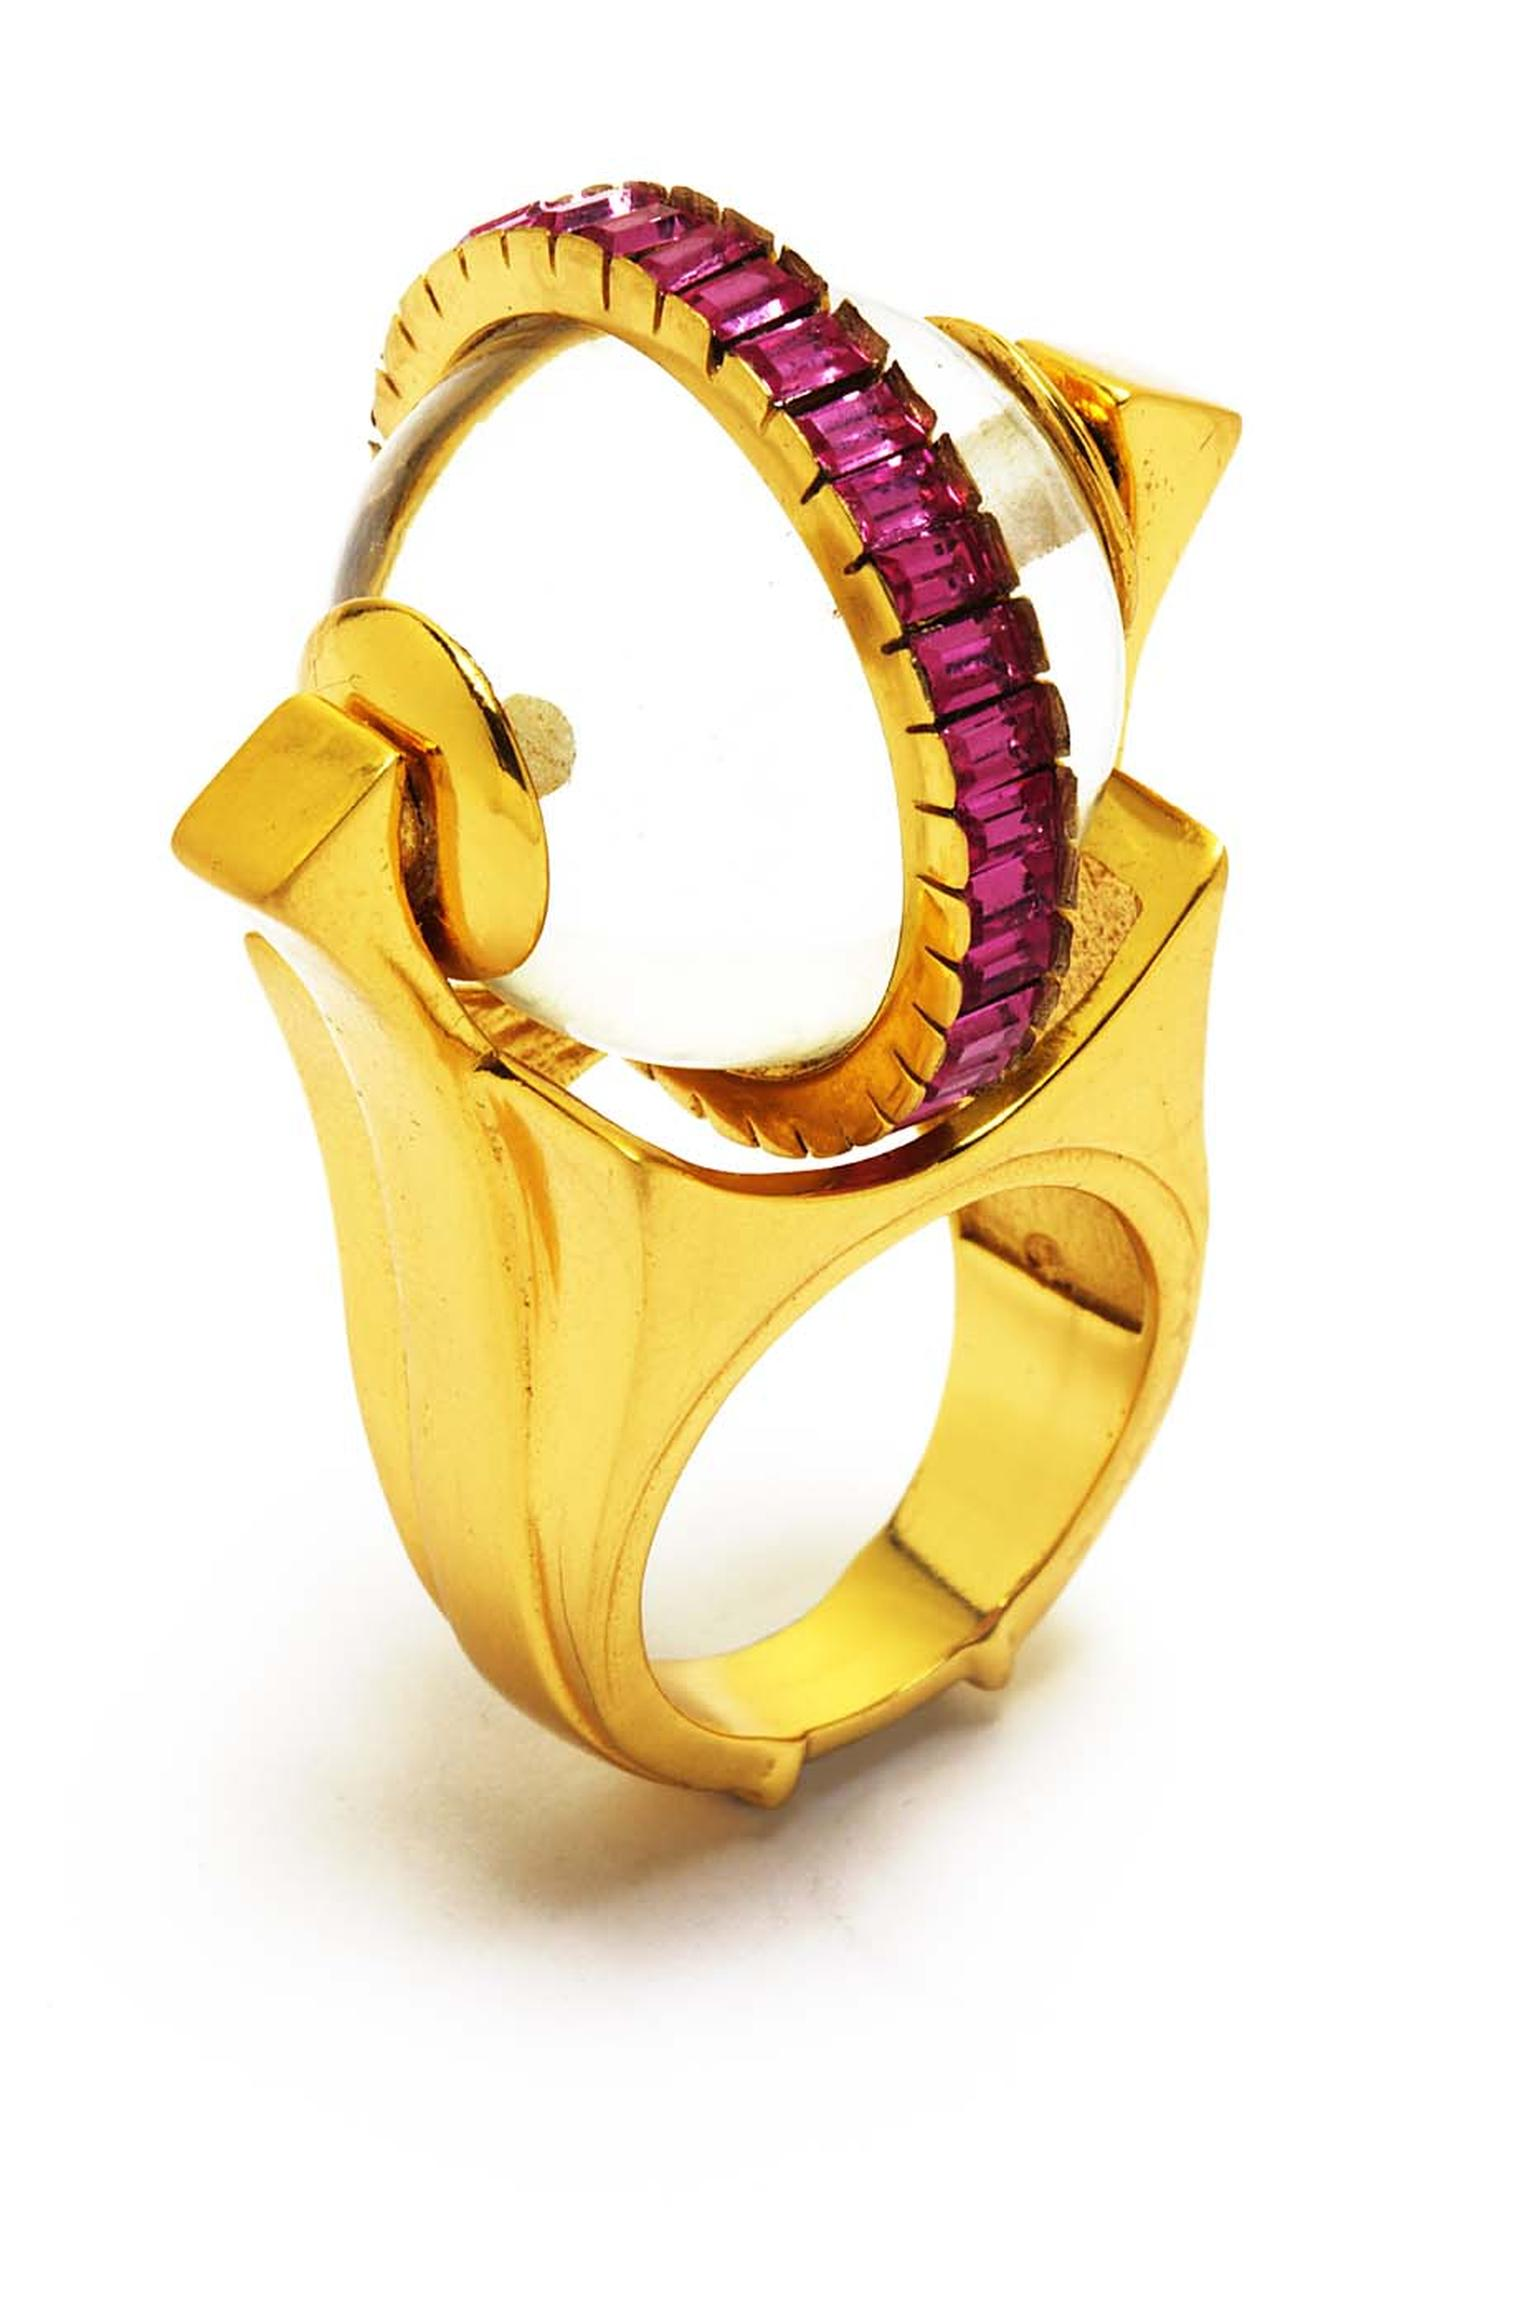 Manish Arora for Amrapali Rosa enamelled ring with Swarovski crystals.